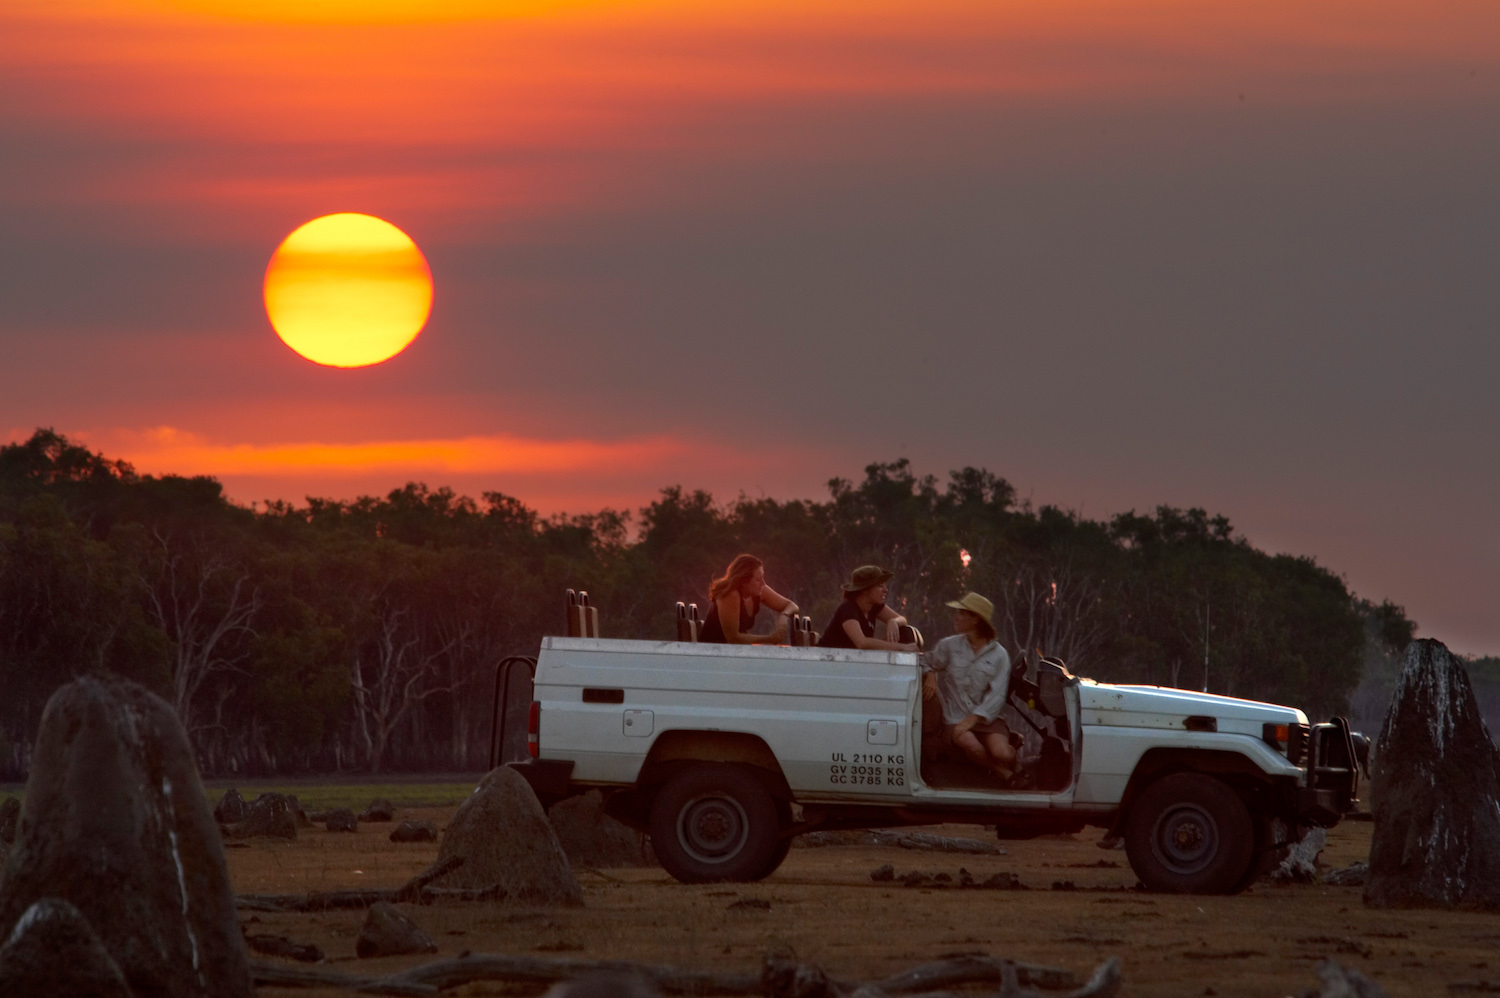 One of the unique and exclusive Australian experiences is a sunset game drive at Bamurru Plains